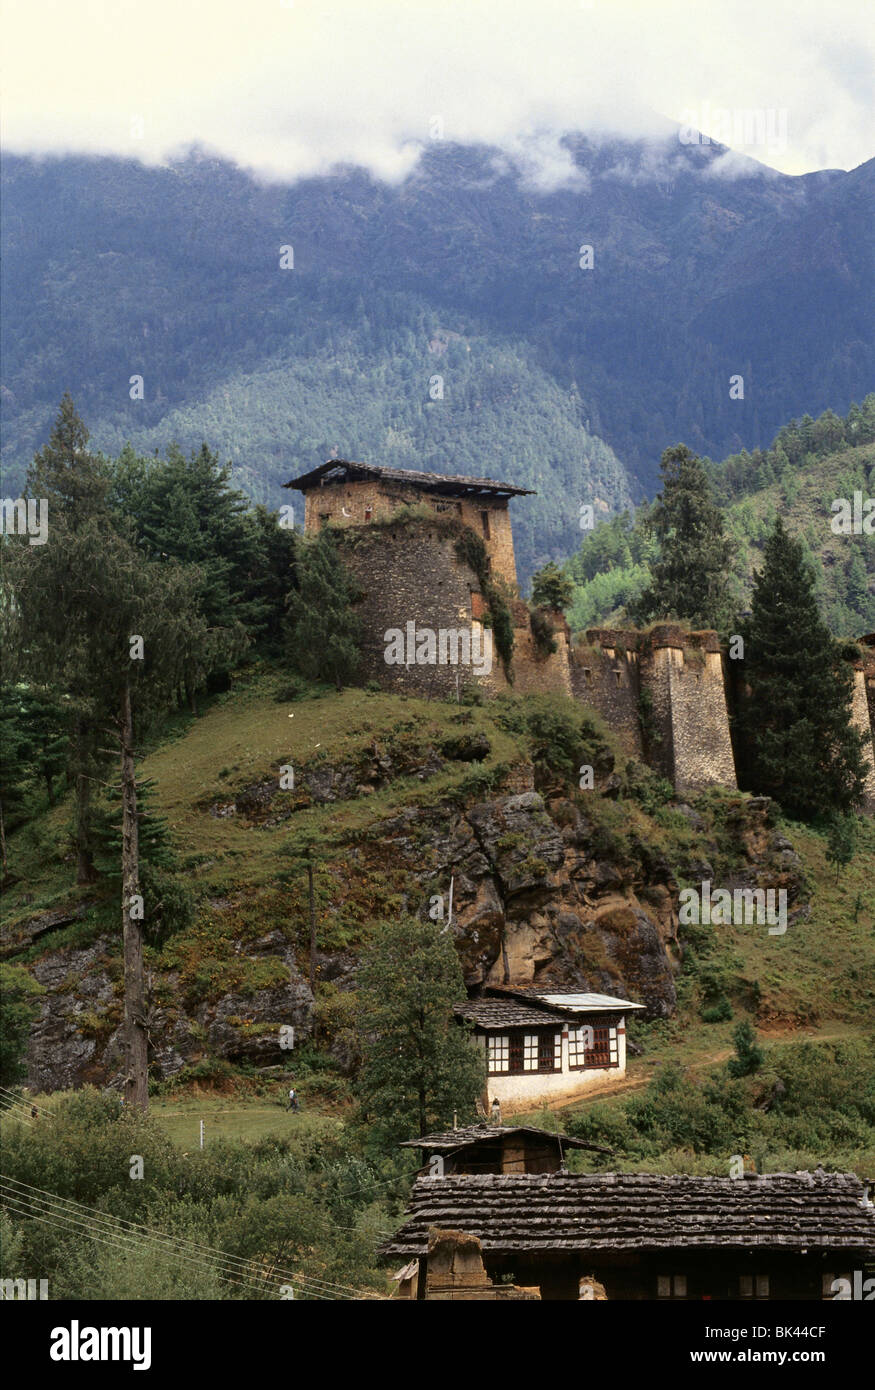 A Buddhist Temple in the Kingdom of Bhutan - Stock Image